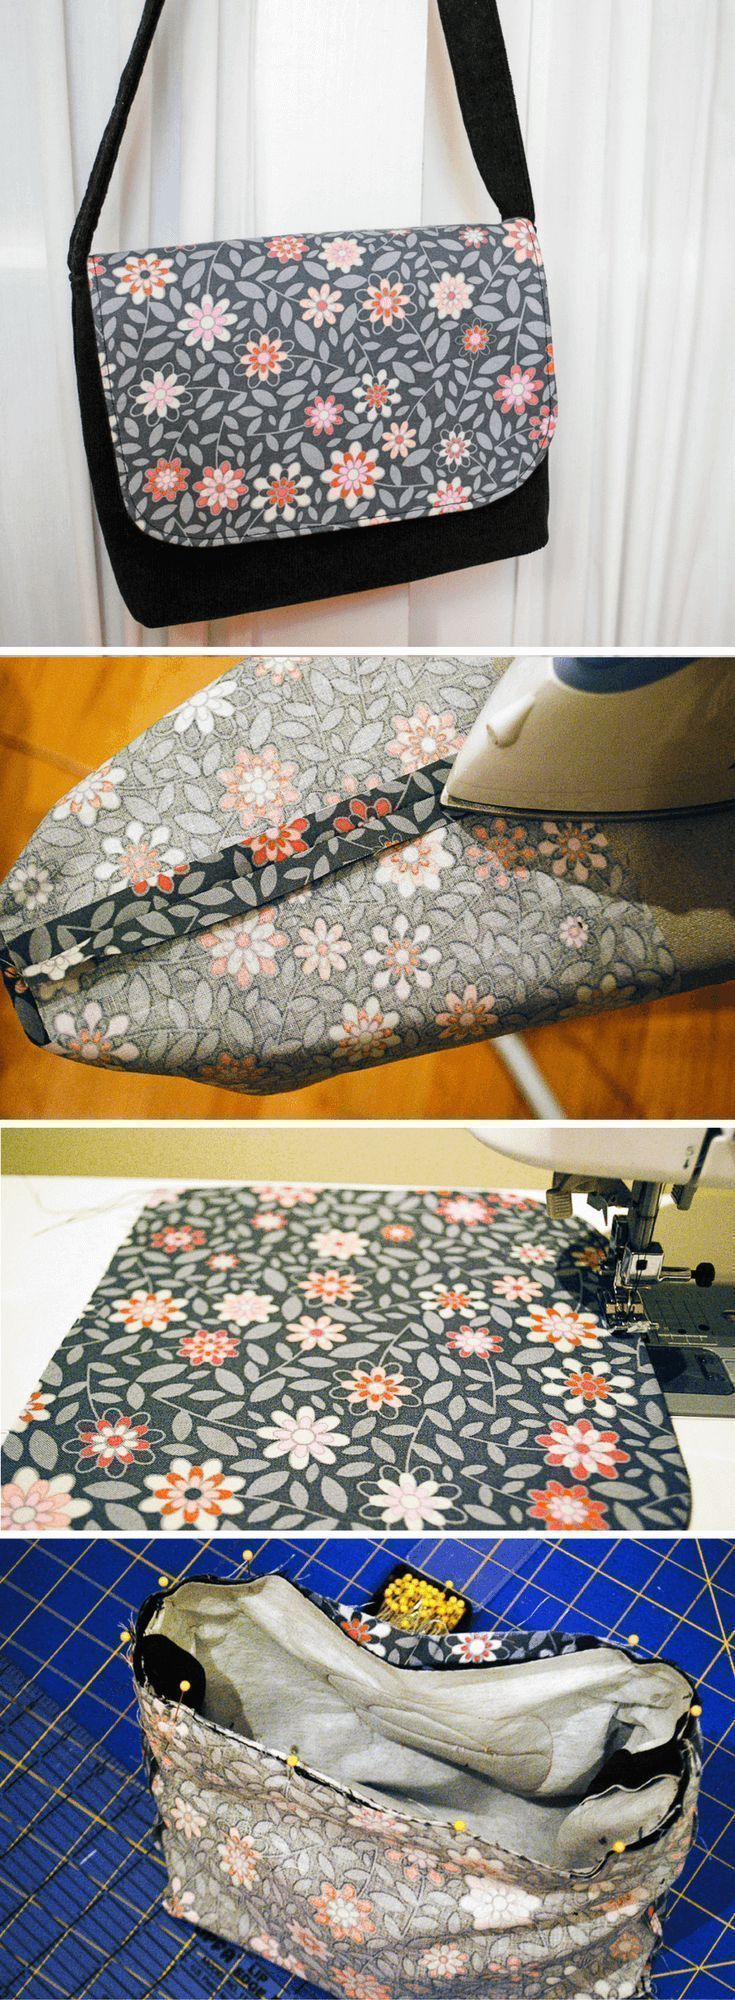 Free sewing pattern for a kid-sized messenger bag. It's an easy DIY sewing project for beginners an